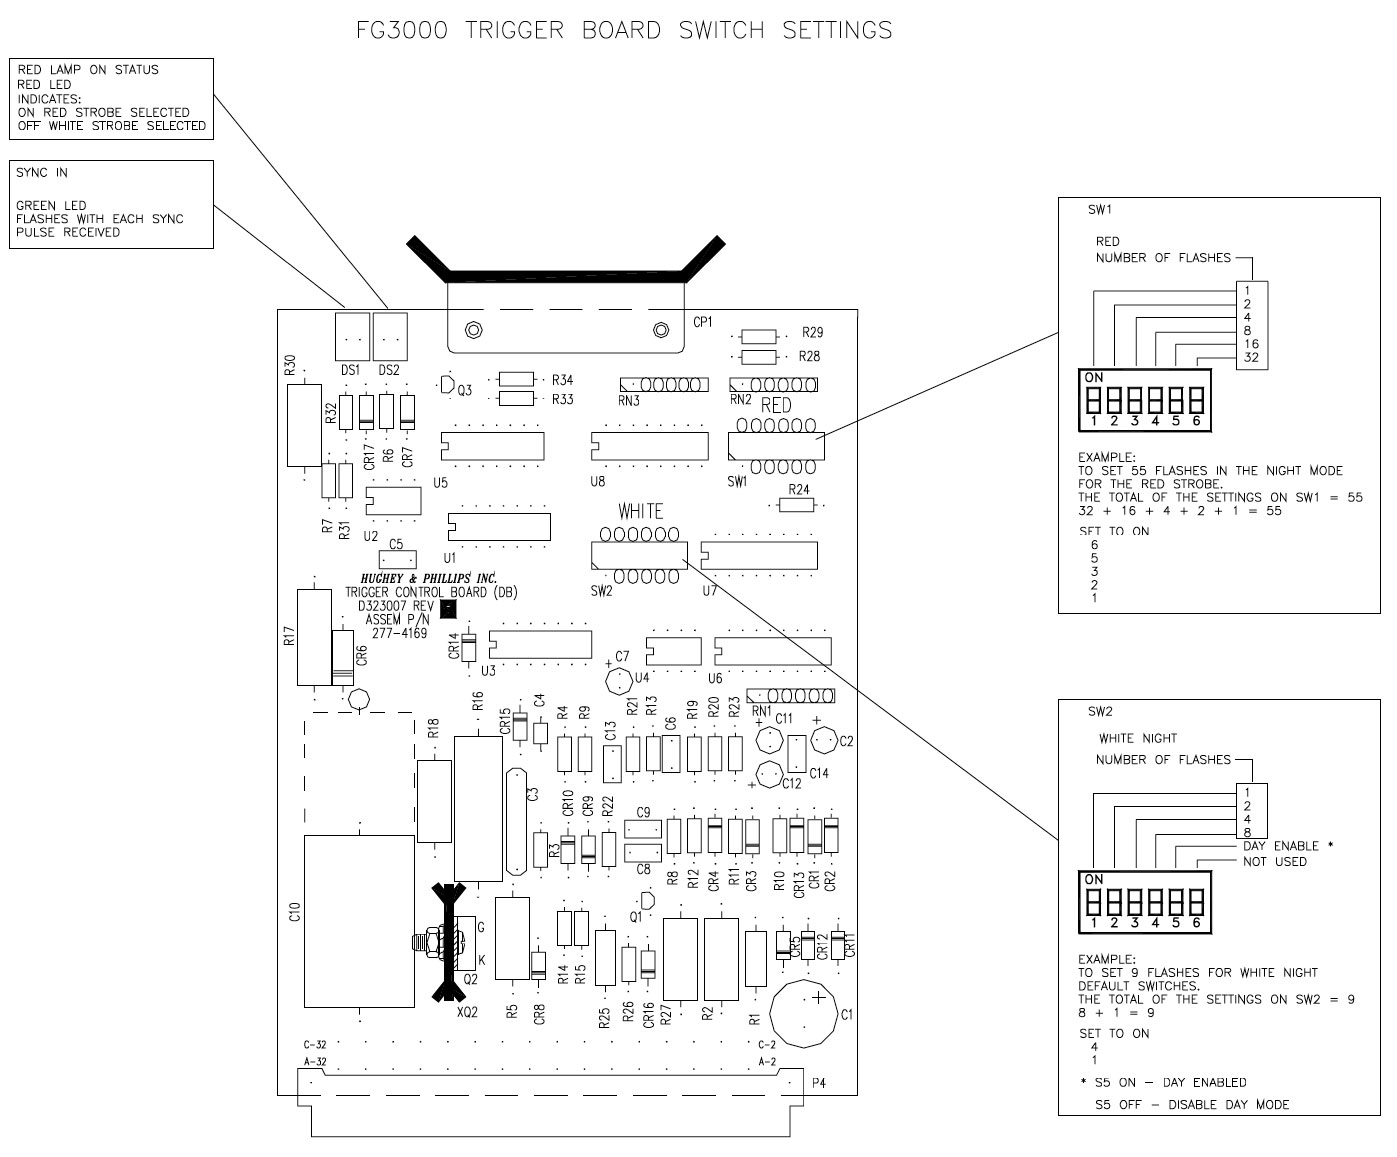 Troubleshooting Guide For Fg3000 Dual Medium Intensity Lighting Also Led Driver Circuit Diagram On Strobe Power Supply Wiring Figure 6 Trigger Control Detail